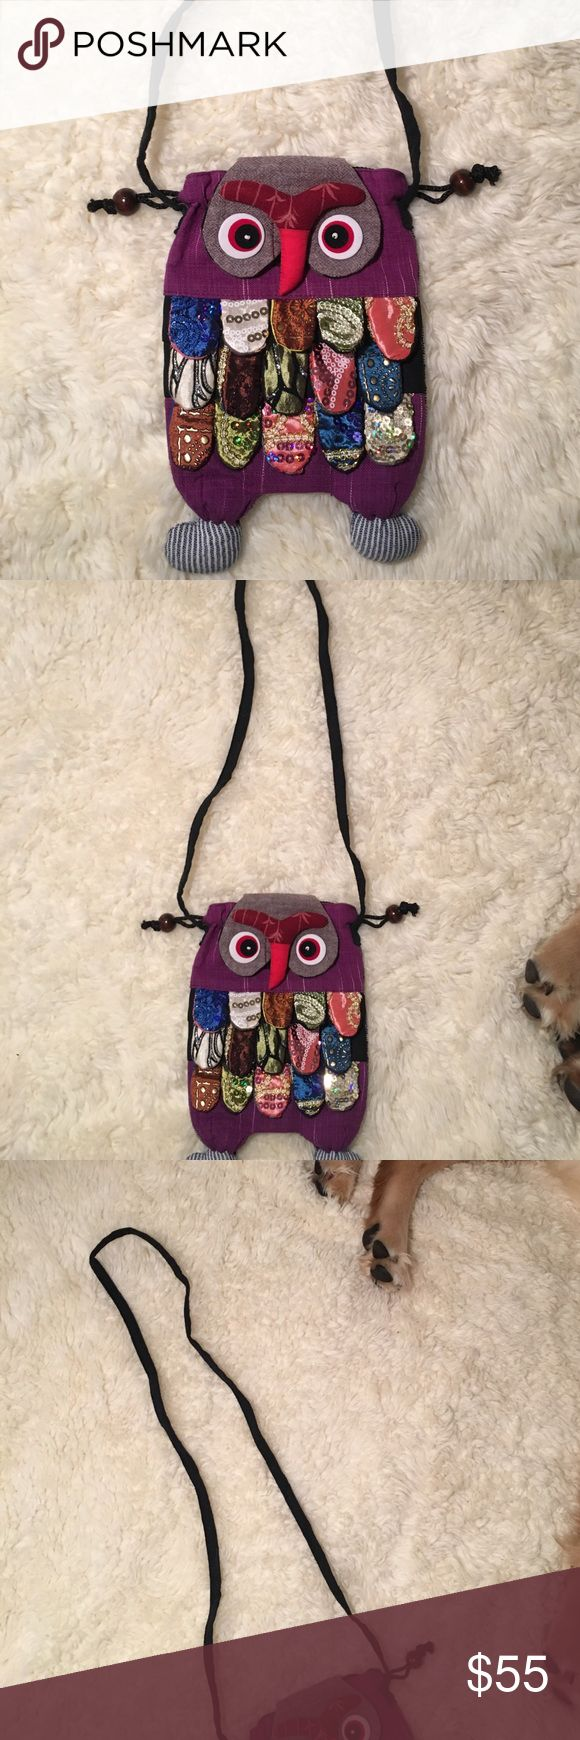 Owl purse hand made Owl purse American Apparel Bags